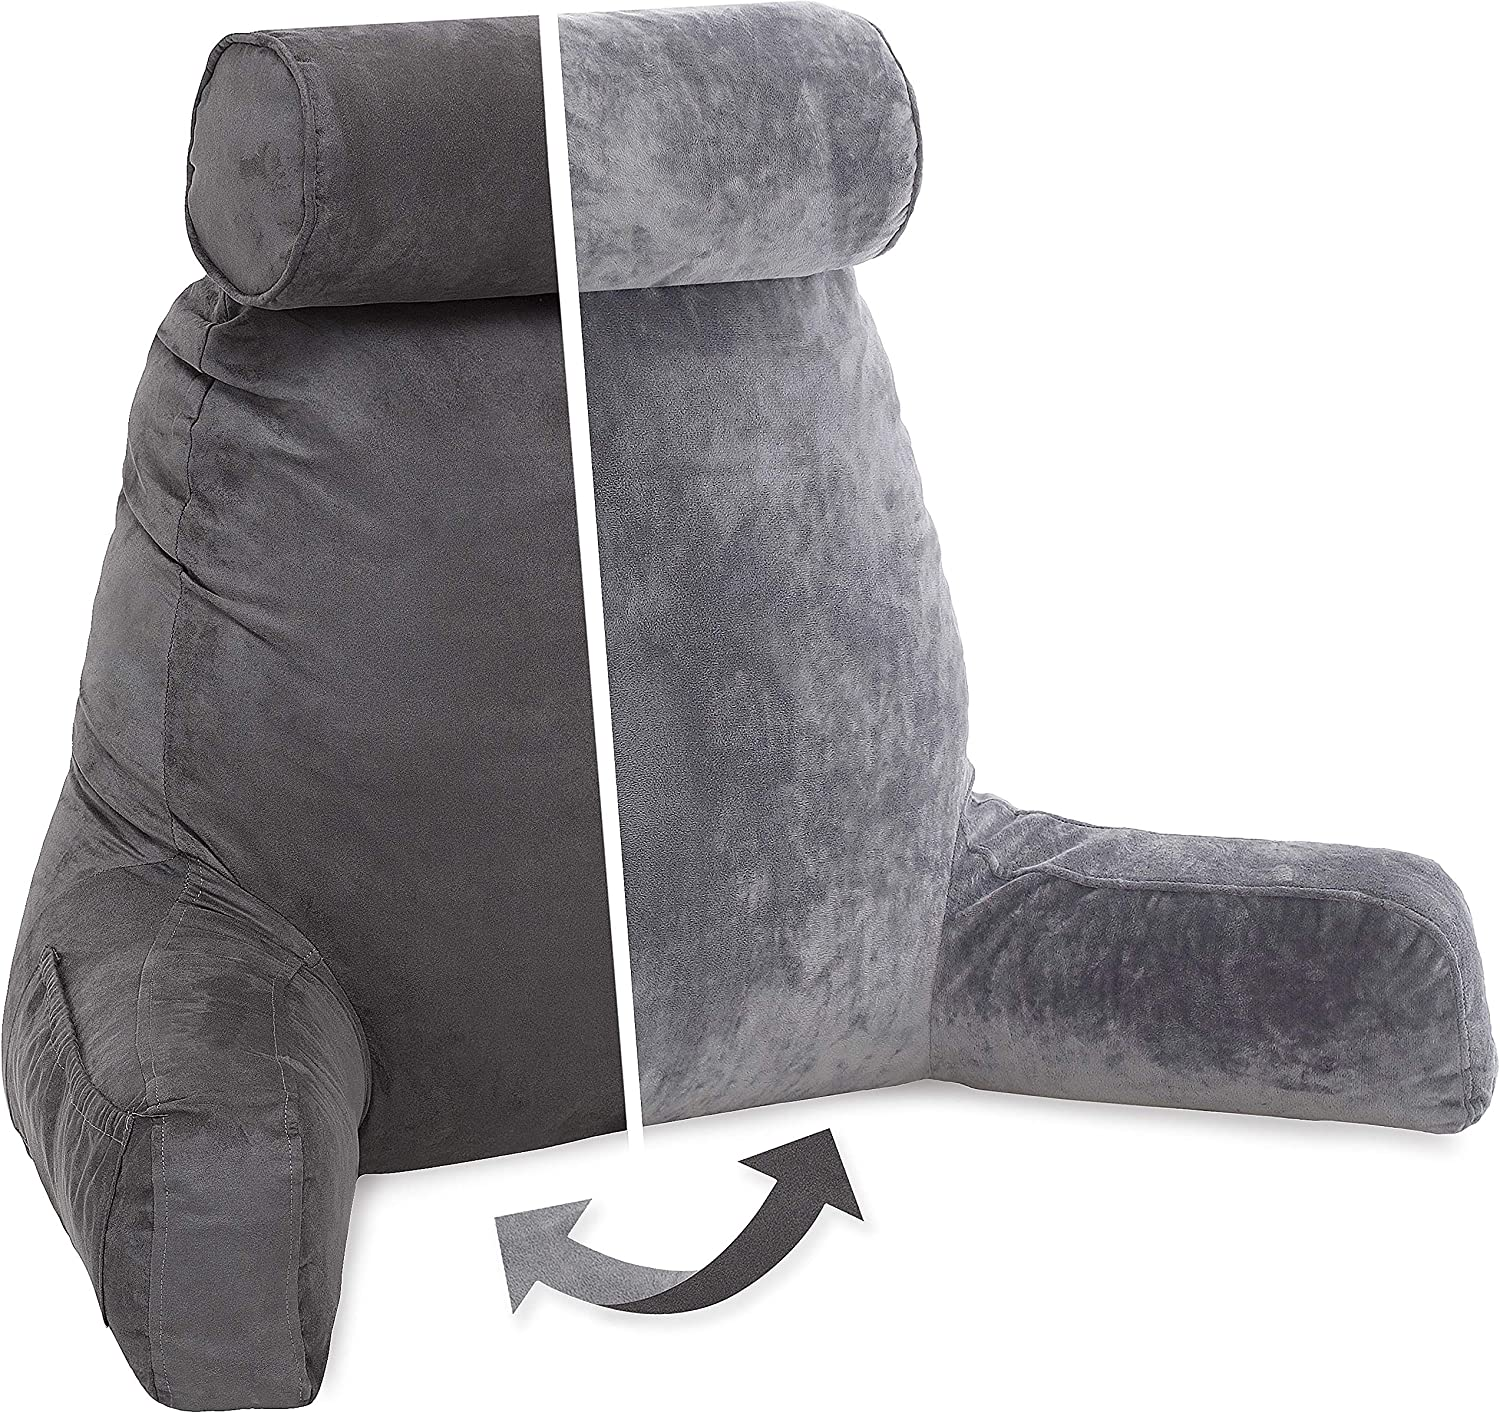 Husband Pillow, Aspen Edition - Reading and Bed Rest Pillow with Arms - Neck Roll on Bungee Cord or Removable - Premium Memory Foam - Reversible Two-Sided Cover Microsuede or Microfiber, Iron Grey: Home & Kitchen